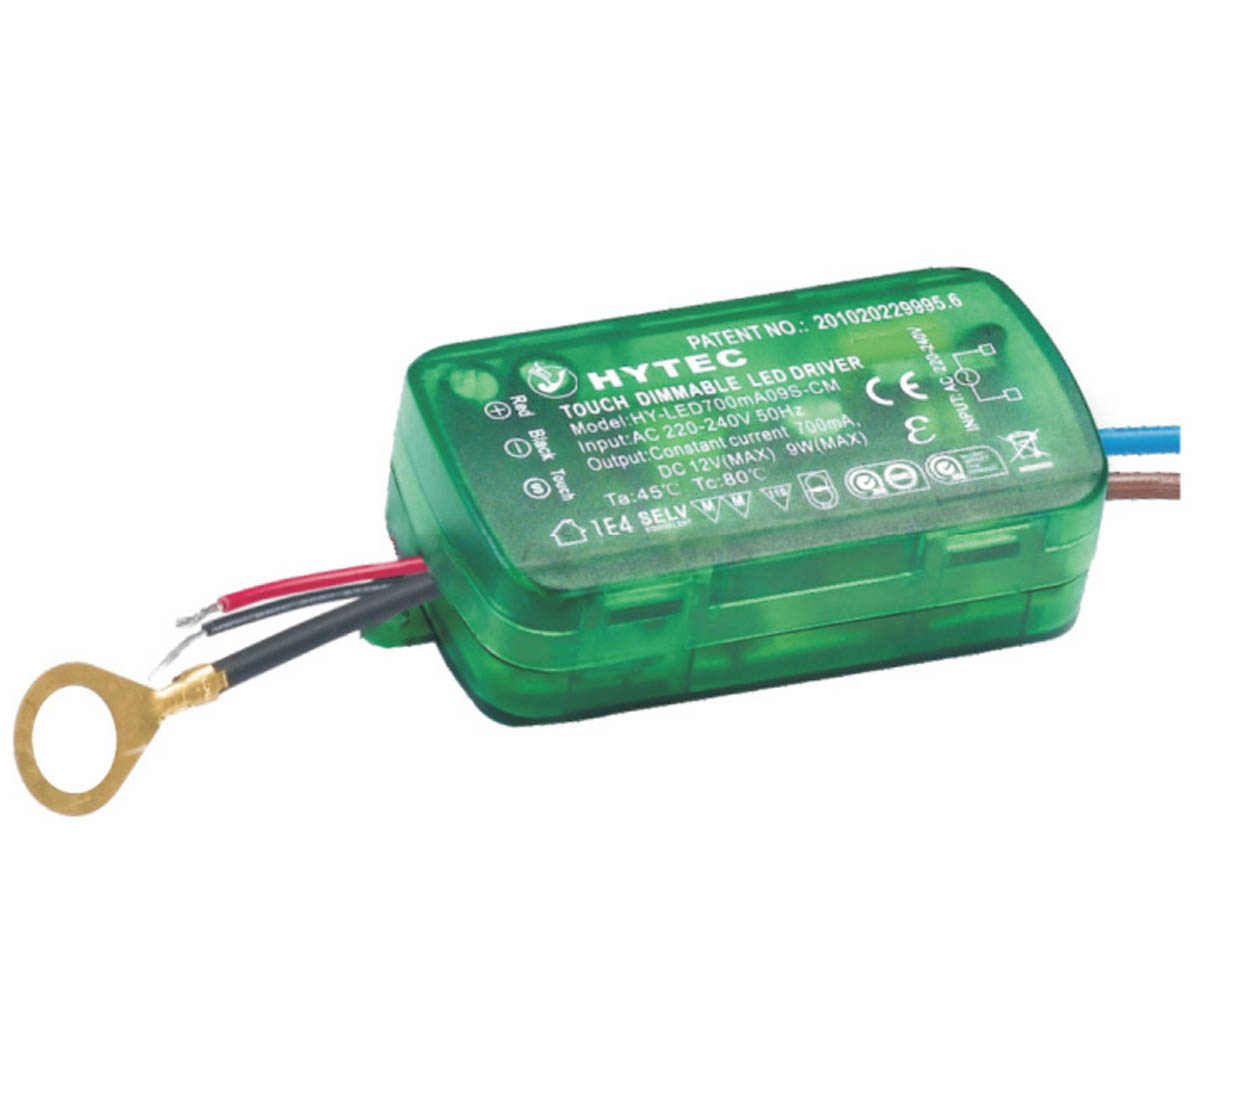 Touch Dimmable LED Driver 9W Series Built-in Type